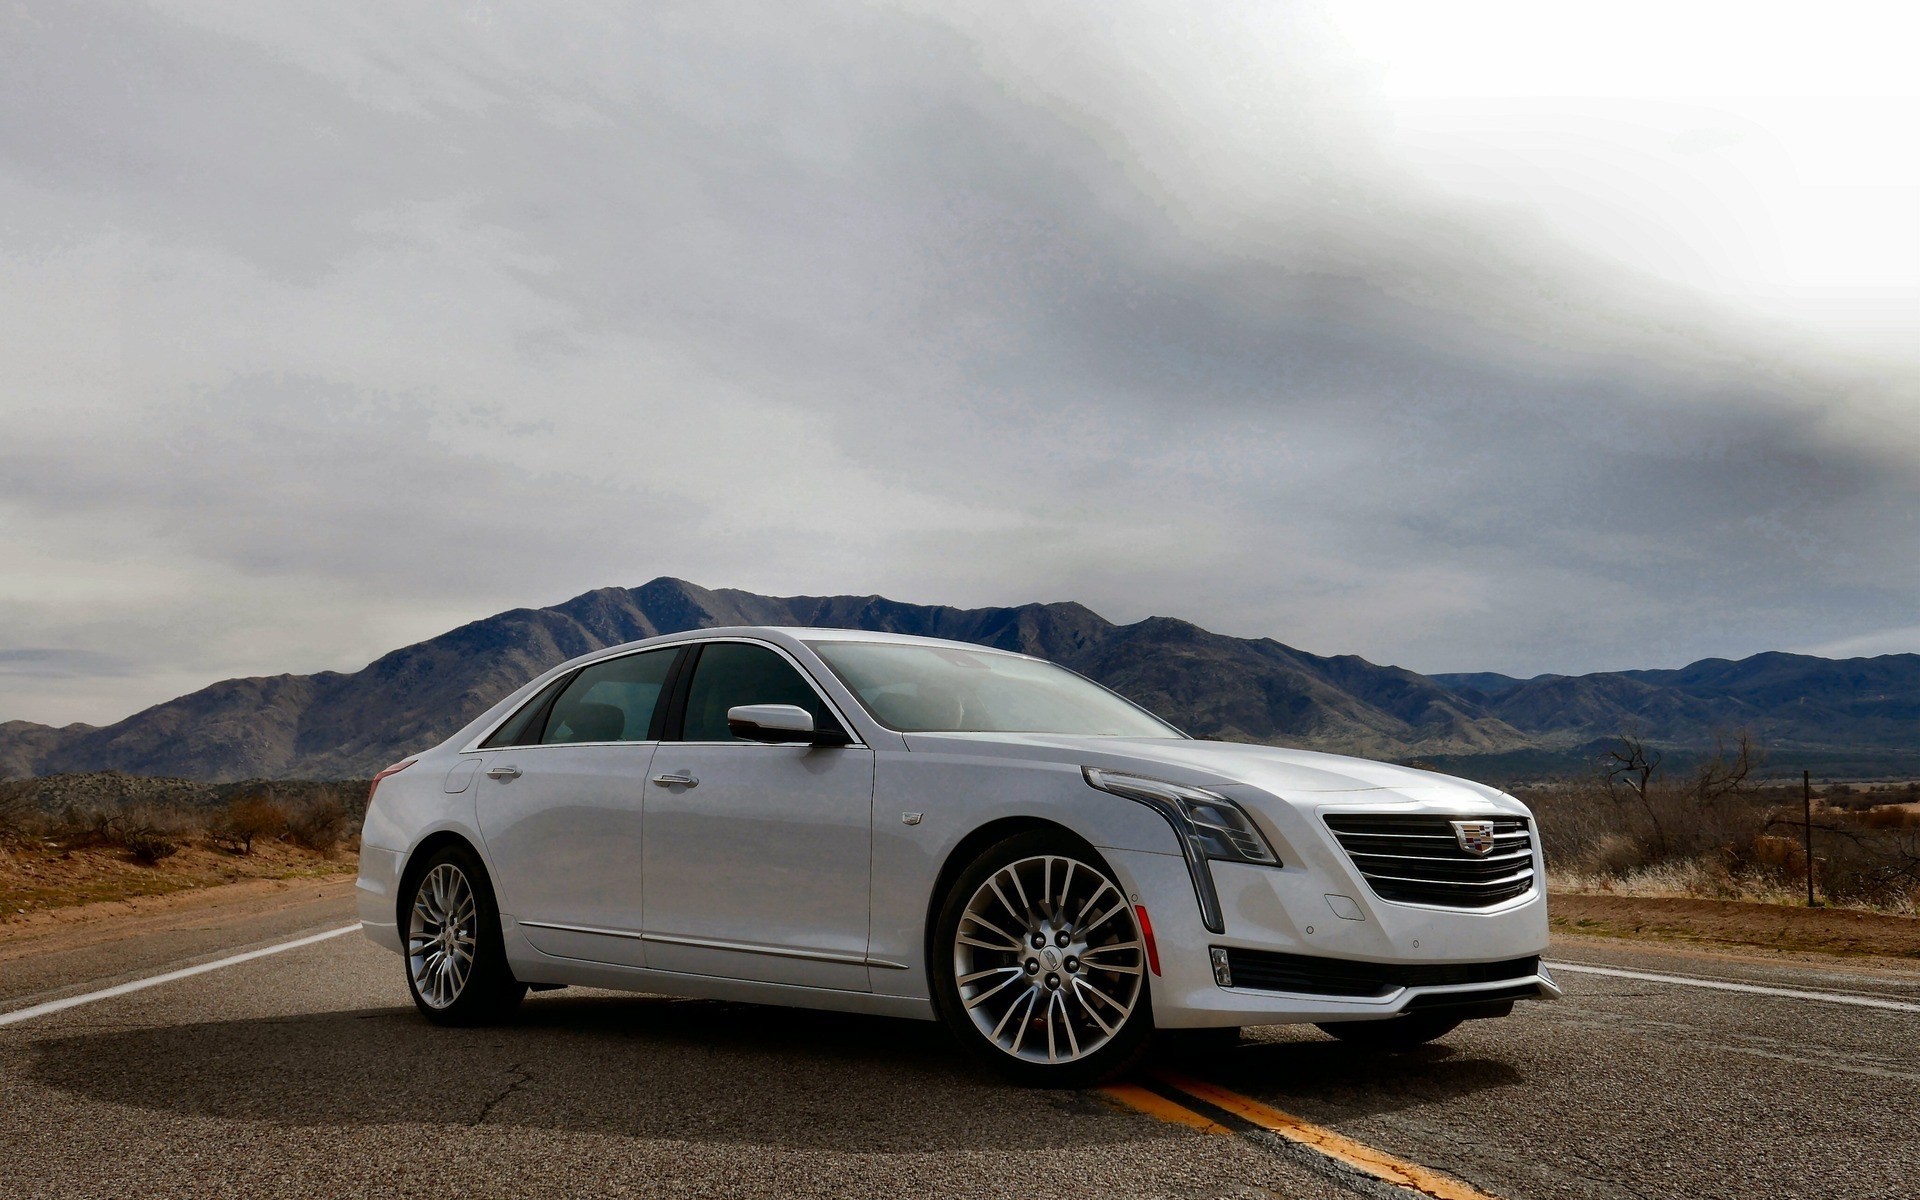 cadillac the youtube v is much good engine a with corvette ep cts watch ignition how just